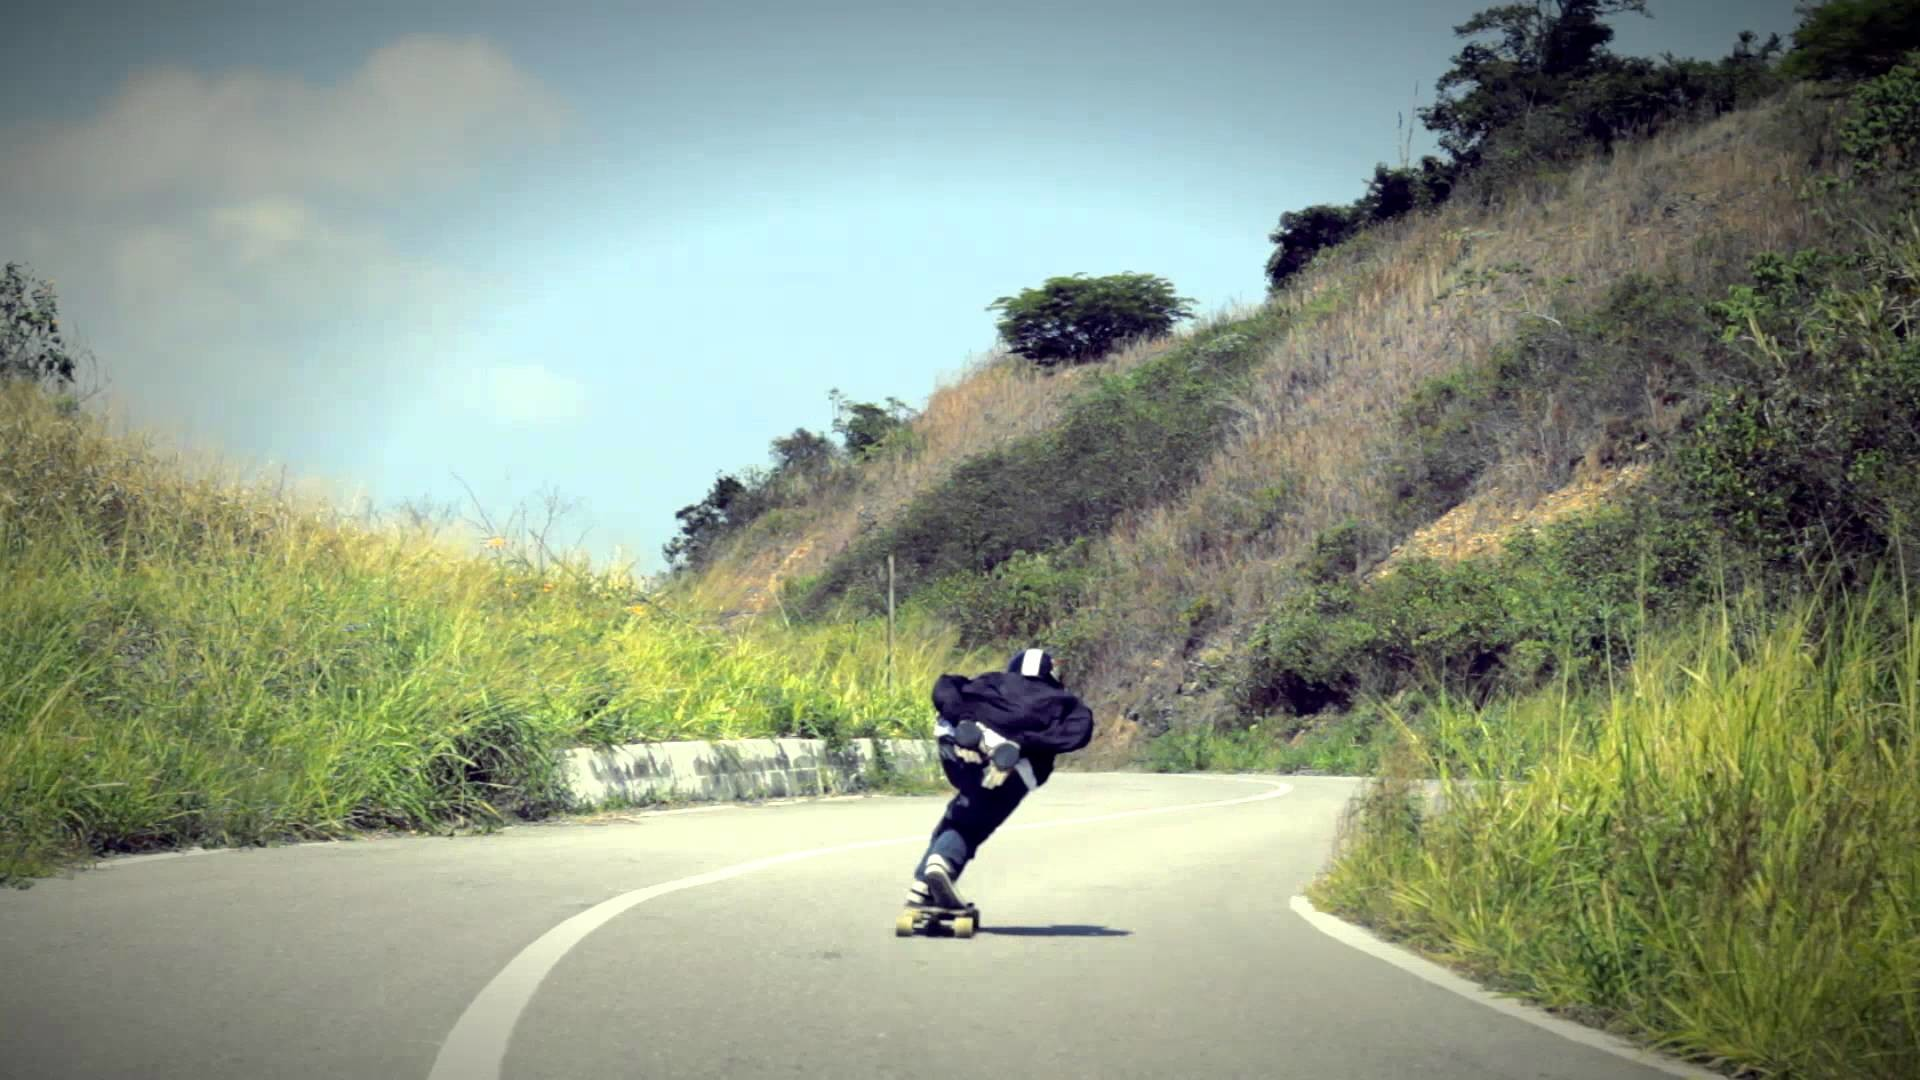 Longboarding wallpaper 1920x1080